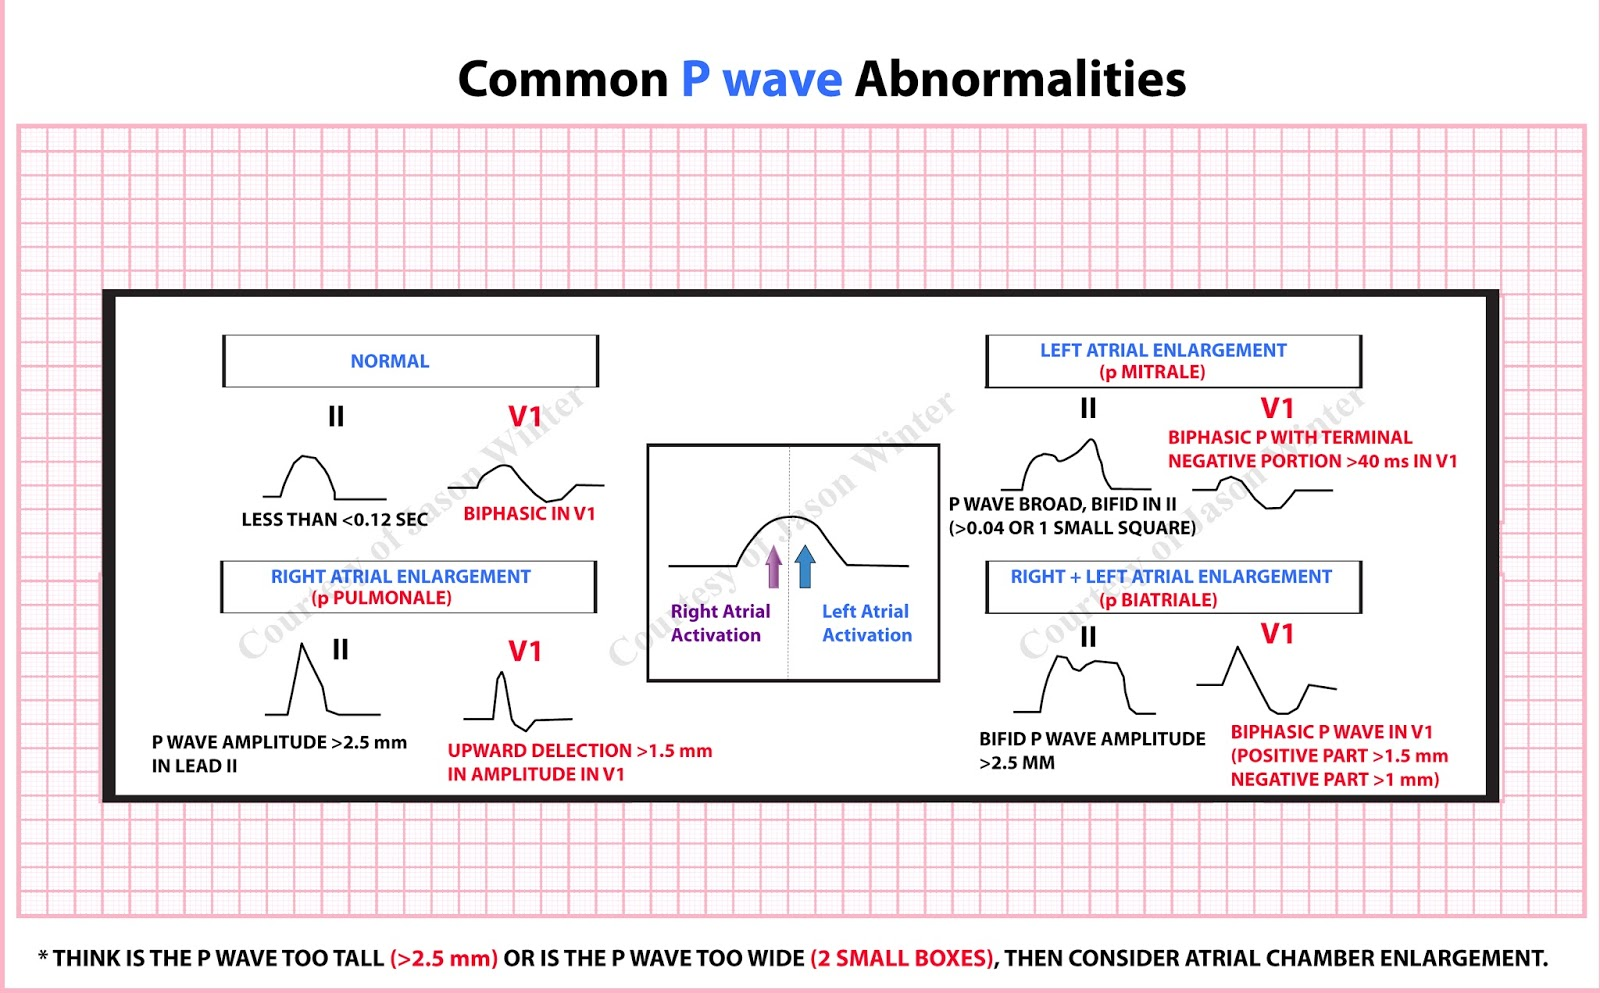 Common P Wave Abnormalities Diagnosis Cardiology